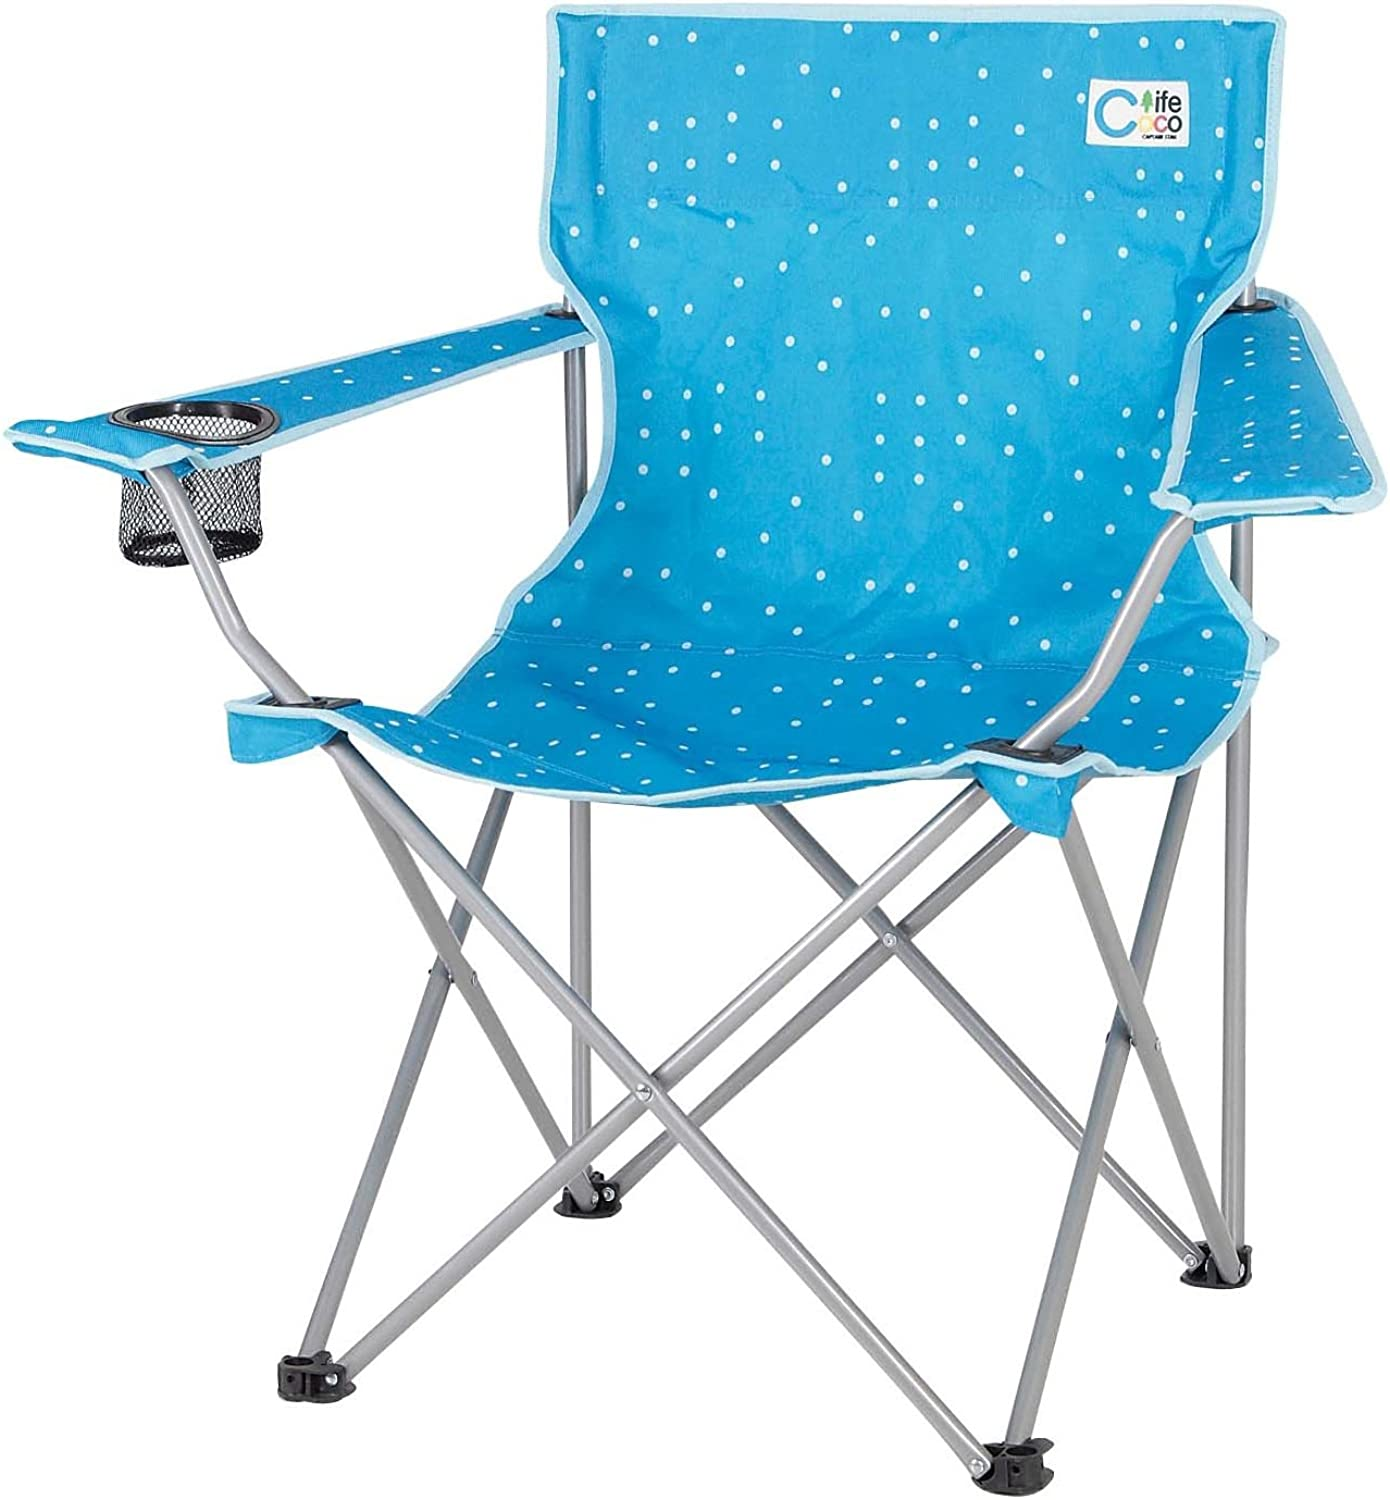 Captain Stagg (CAPTAIN STAG) here Life Lounge Chair blueee UC1536